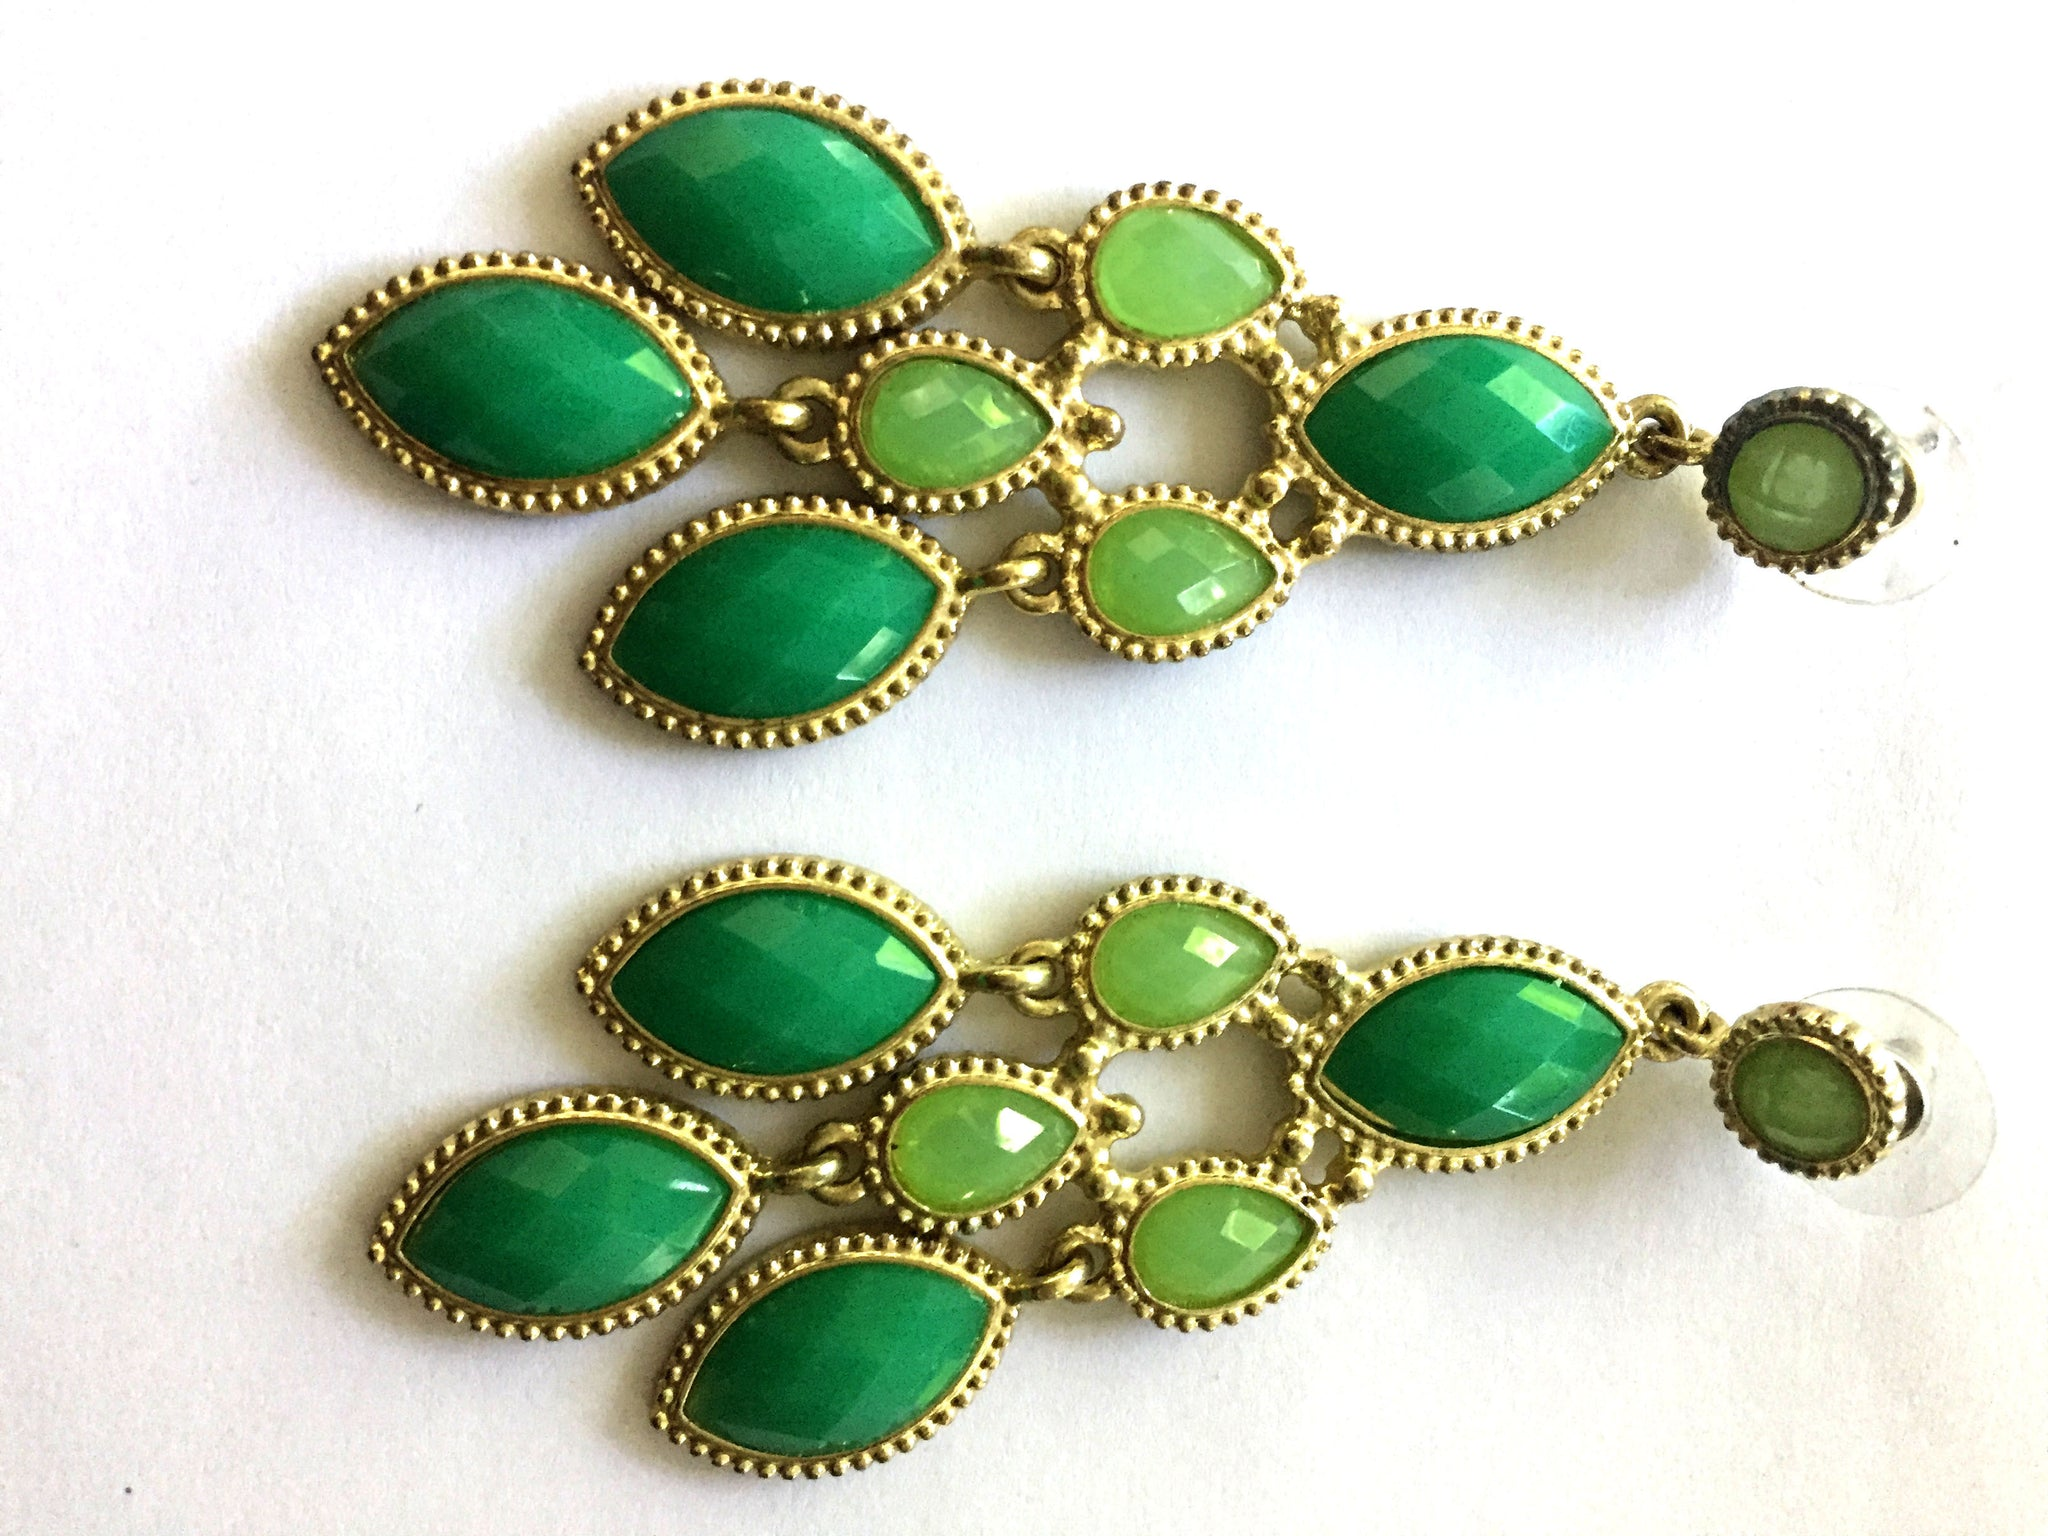 Beach fashion jewelry beach accessories beach glam green chandelier earrings mozeypictures Gallery